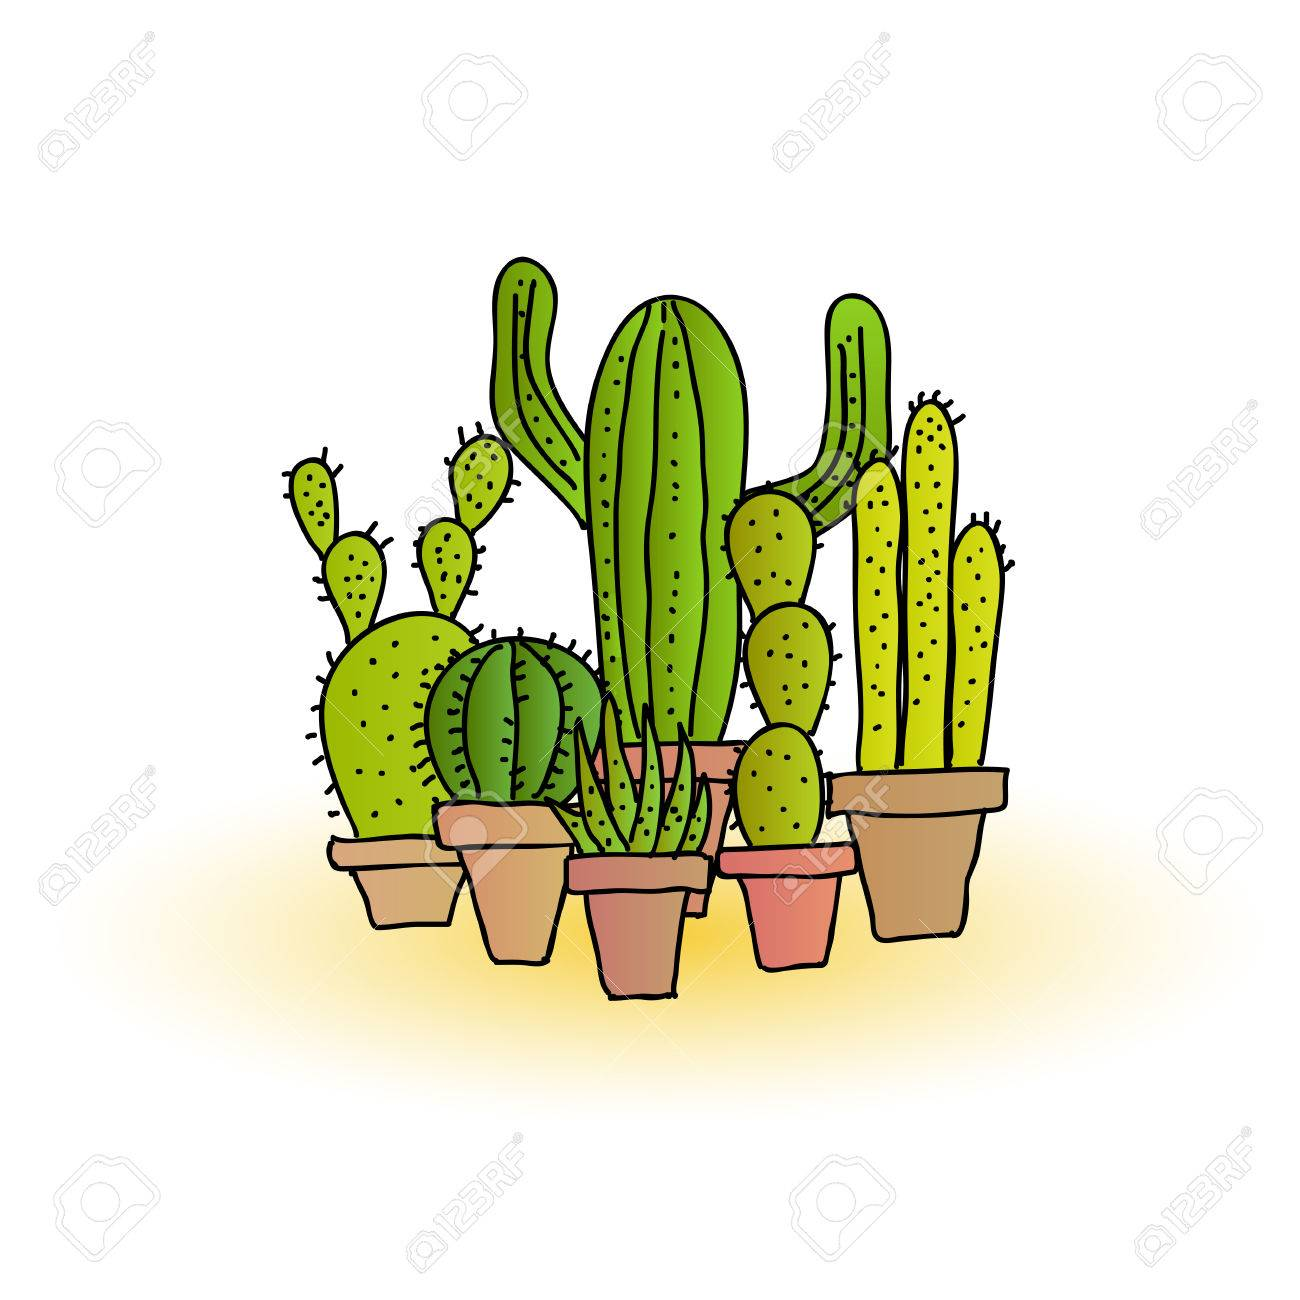 Collection of hand drawn cartoon cacti plants in plant pots